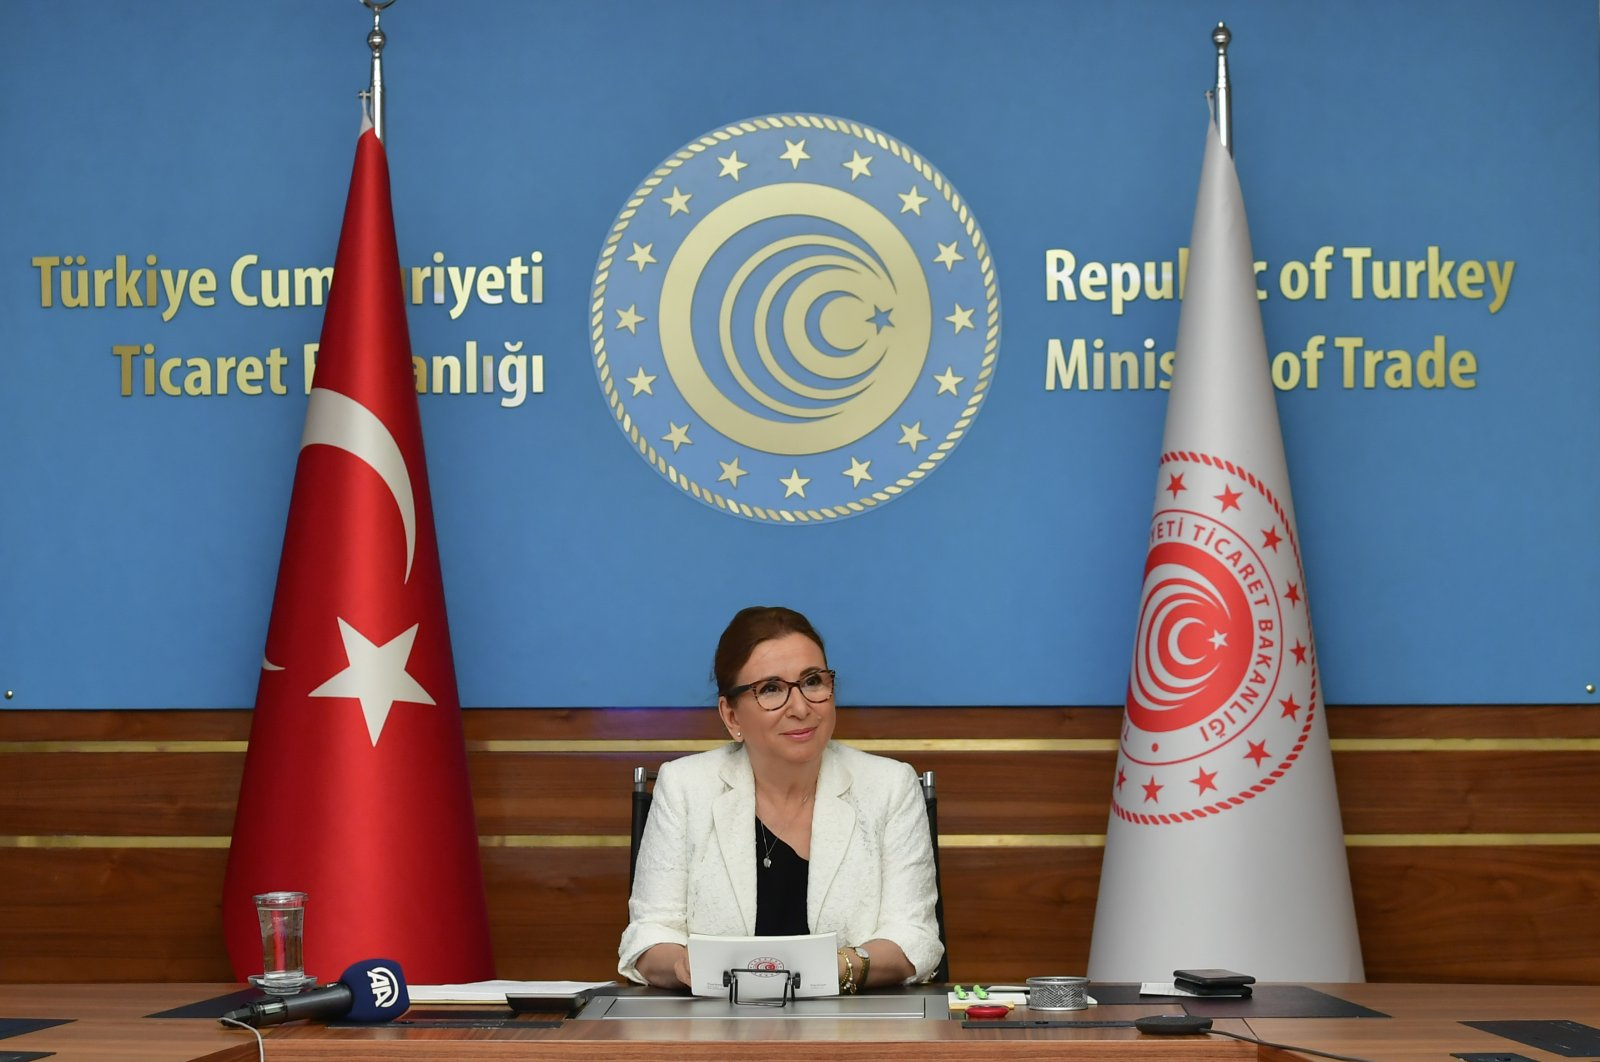 Turkey's Trade Minister Ruhsar Pekcan speaks during a meeting at the ministry's headquarters, Ankara, June 24, 2020.